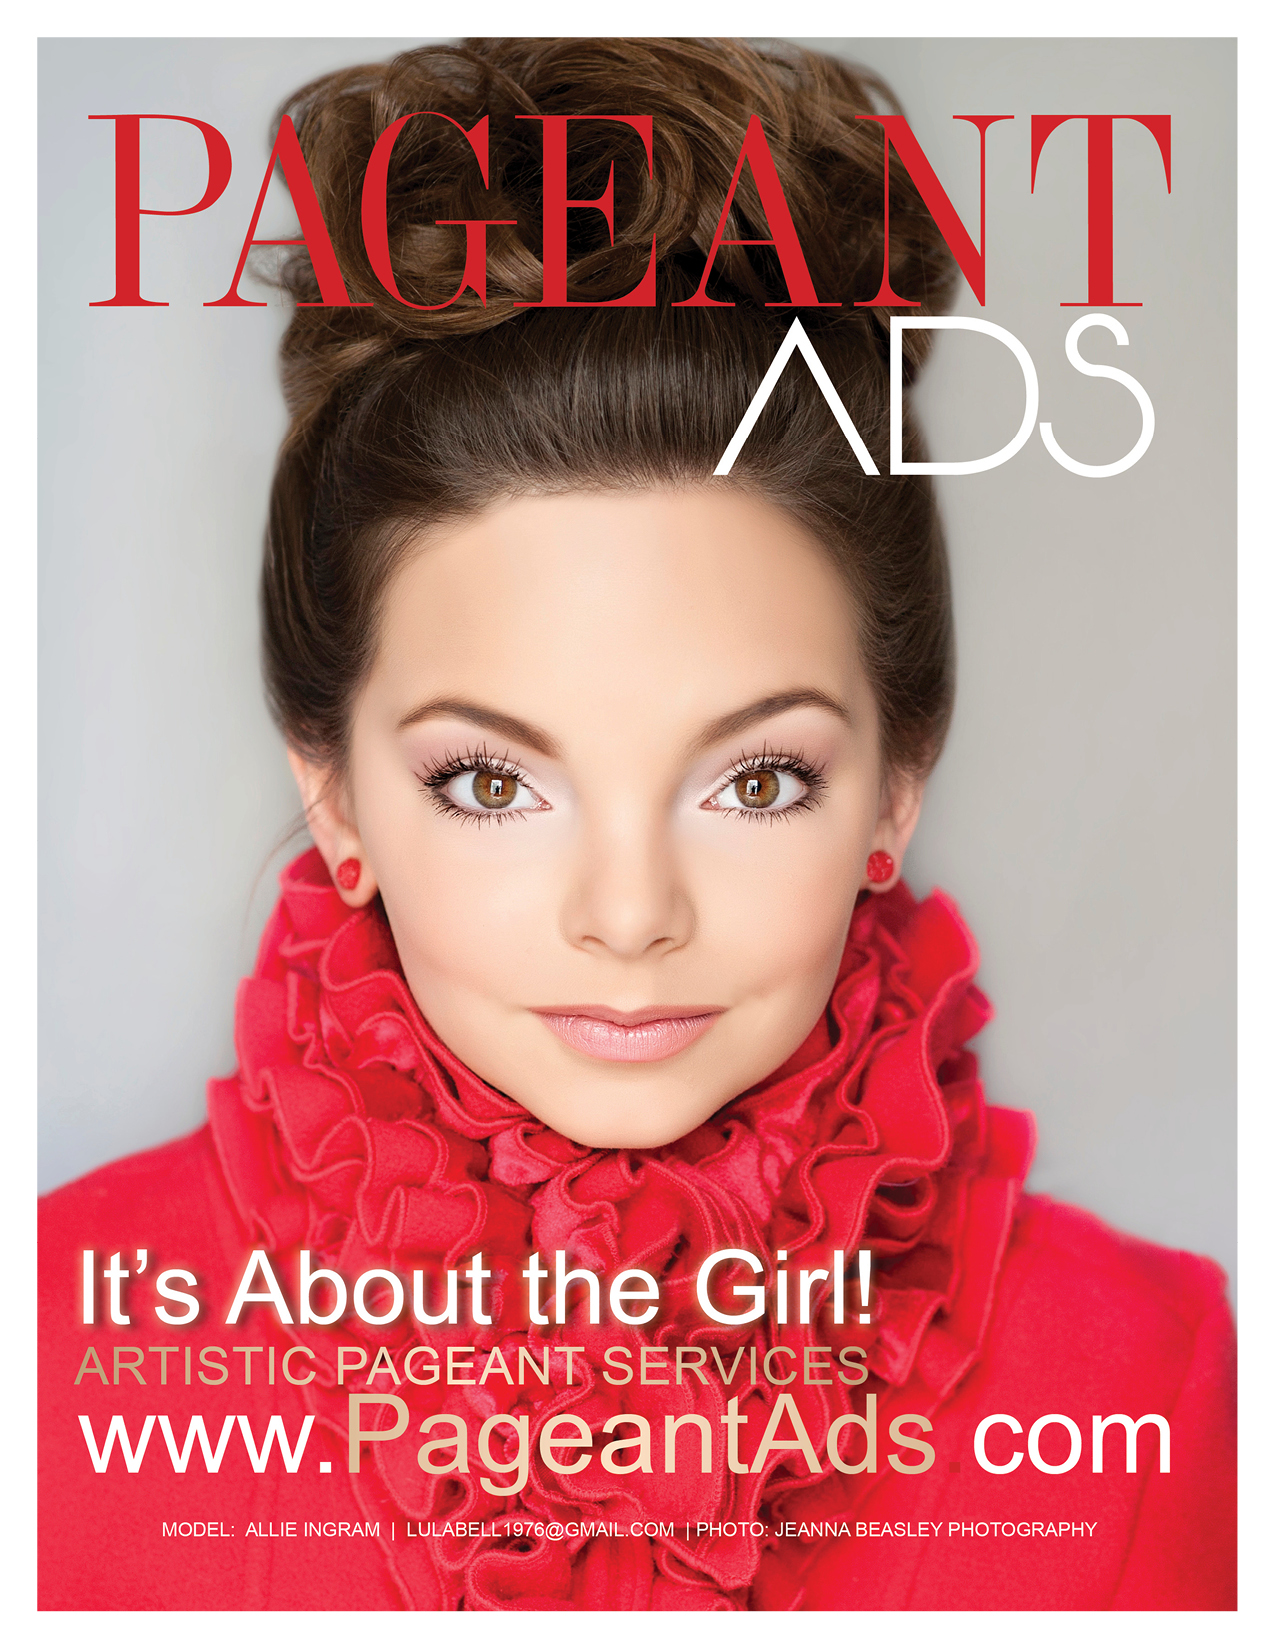 PageantAds Graphic Design